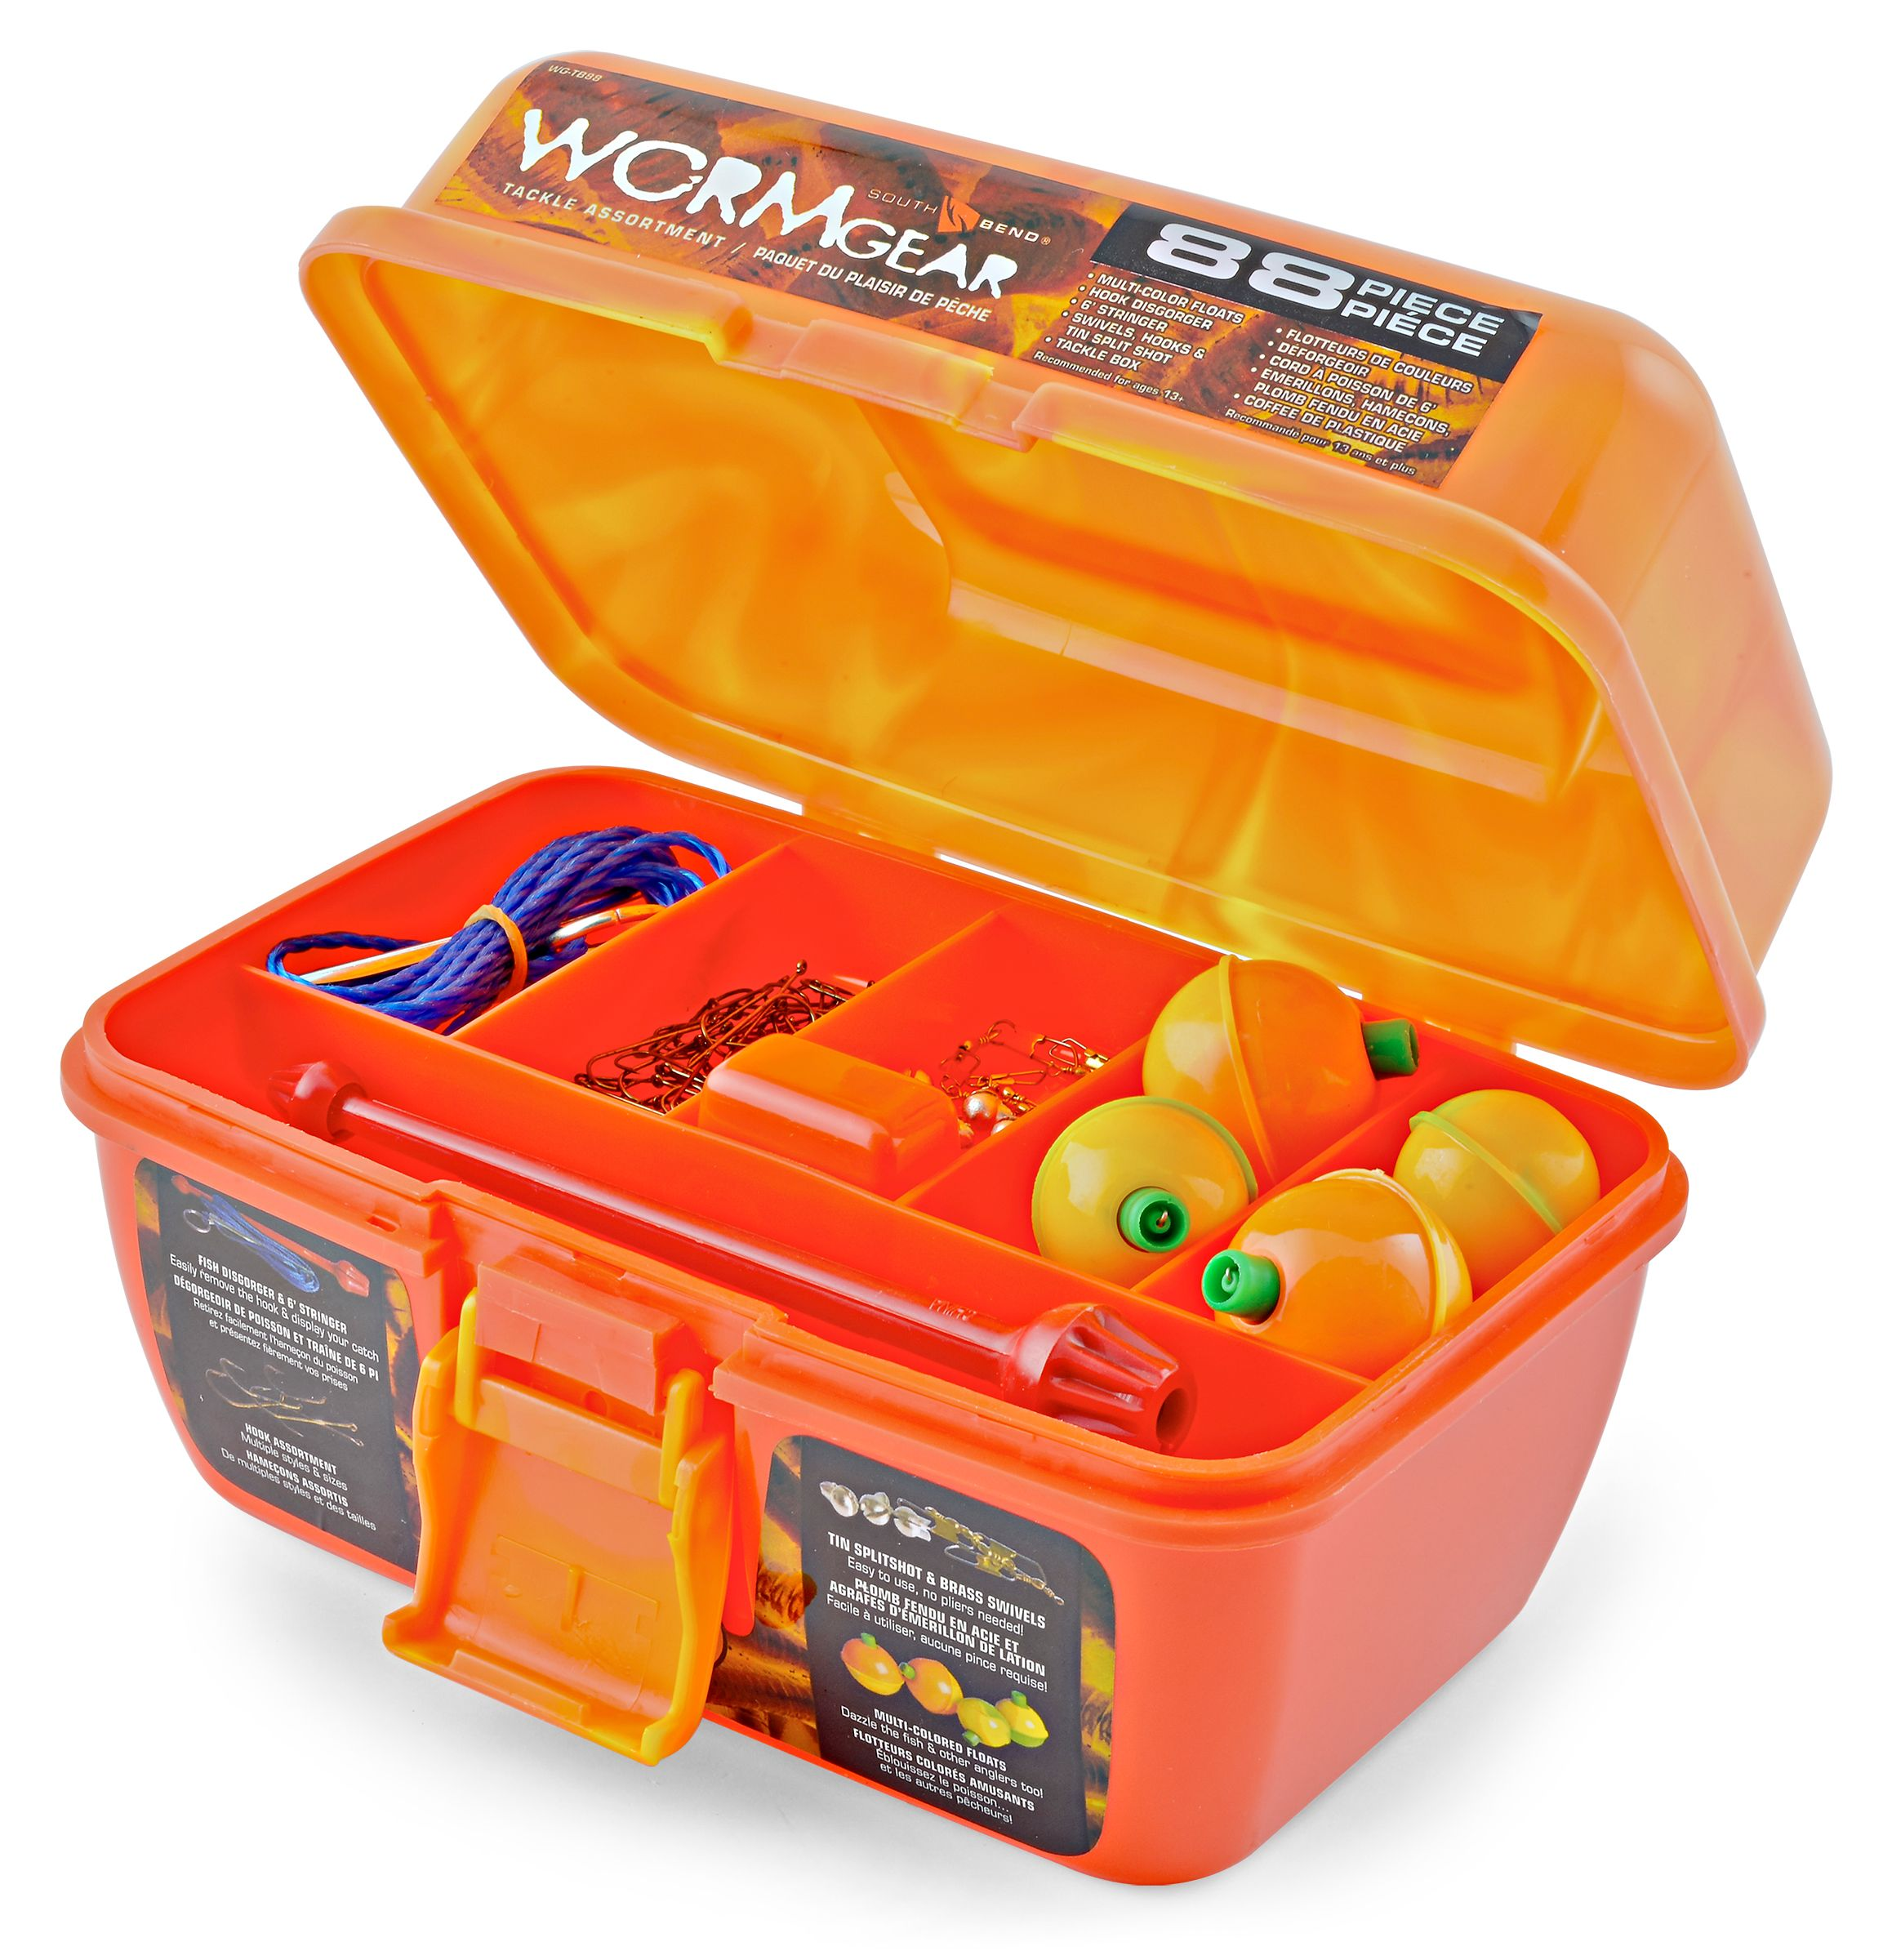 South Bend Worm Gear Tackle Box, 88pc by Generic